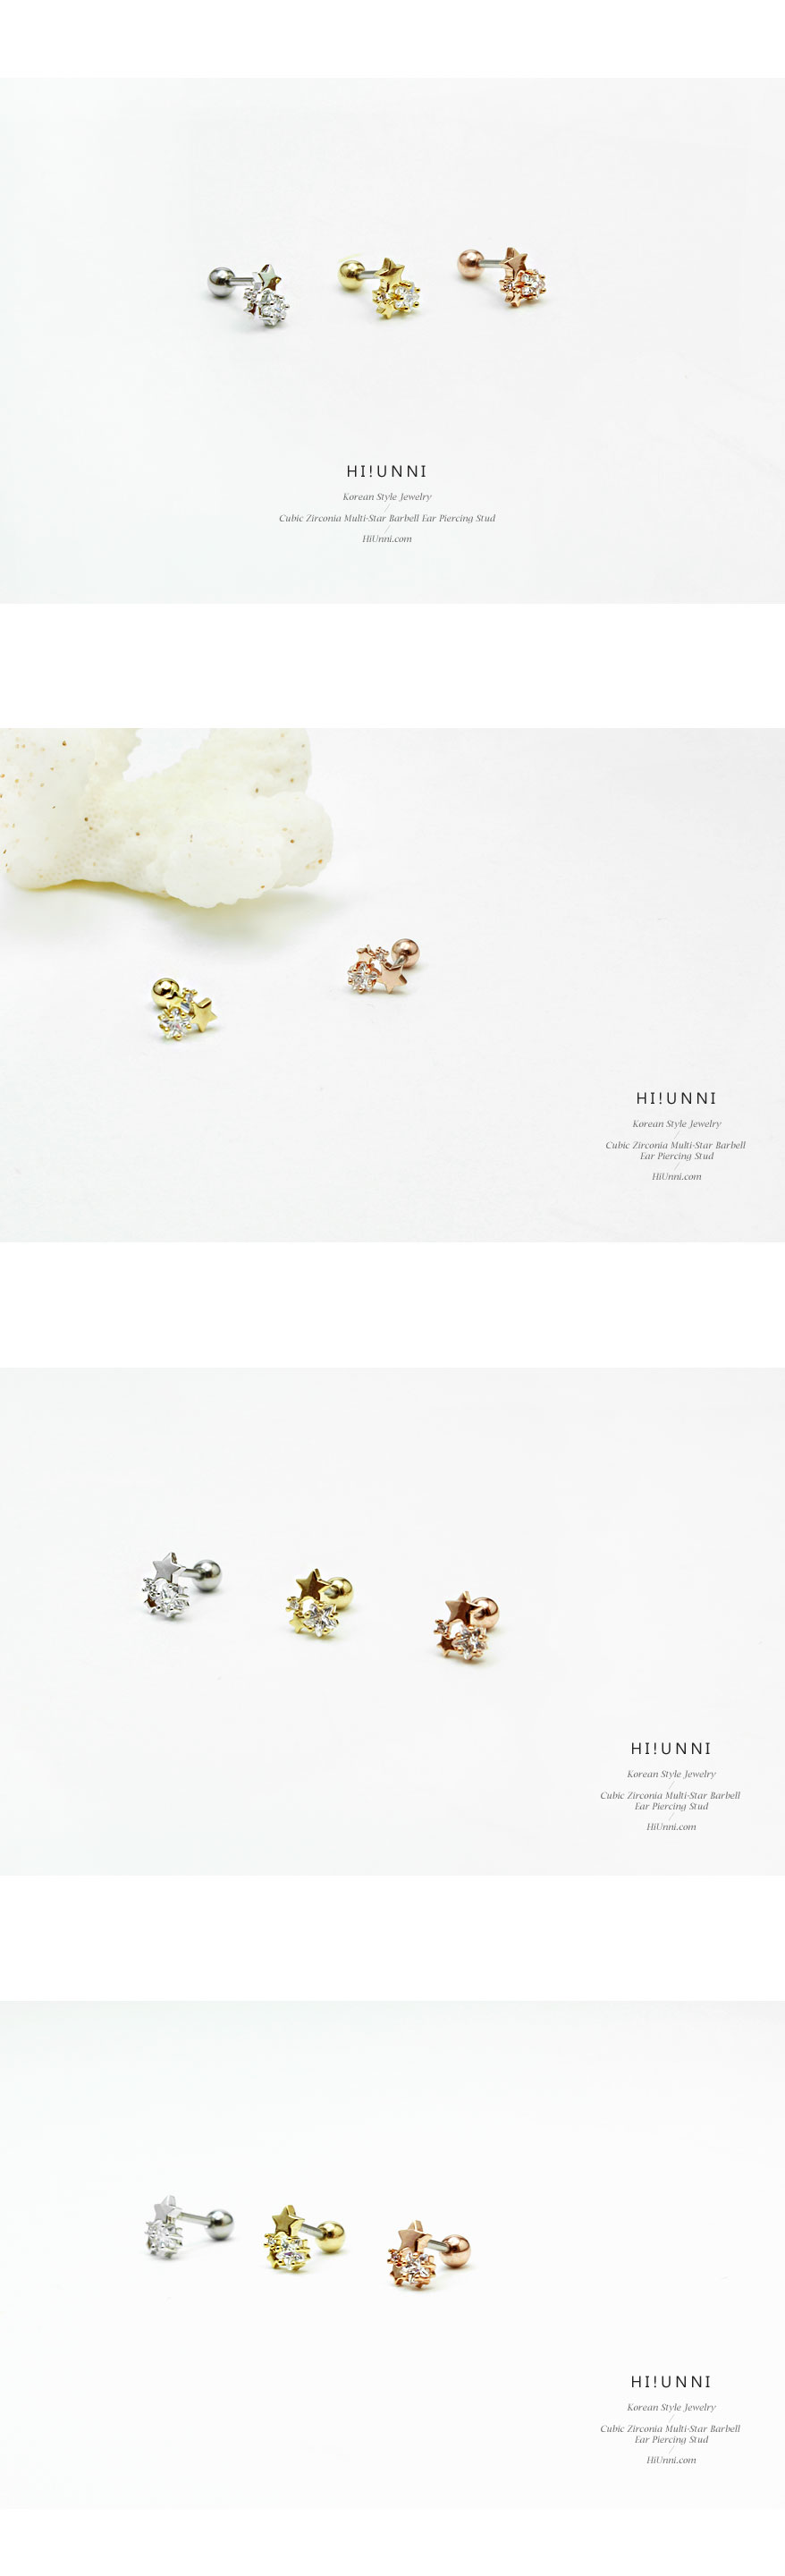 ear_studs_piercing_Cartilage_earrings_16g_316l_Surgical_Stainless_Steel_korean_asian_style_jewelry_barbell_cubic_zirconia_cz_star_3